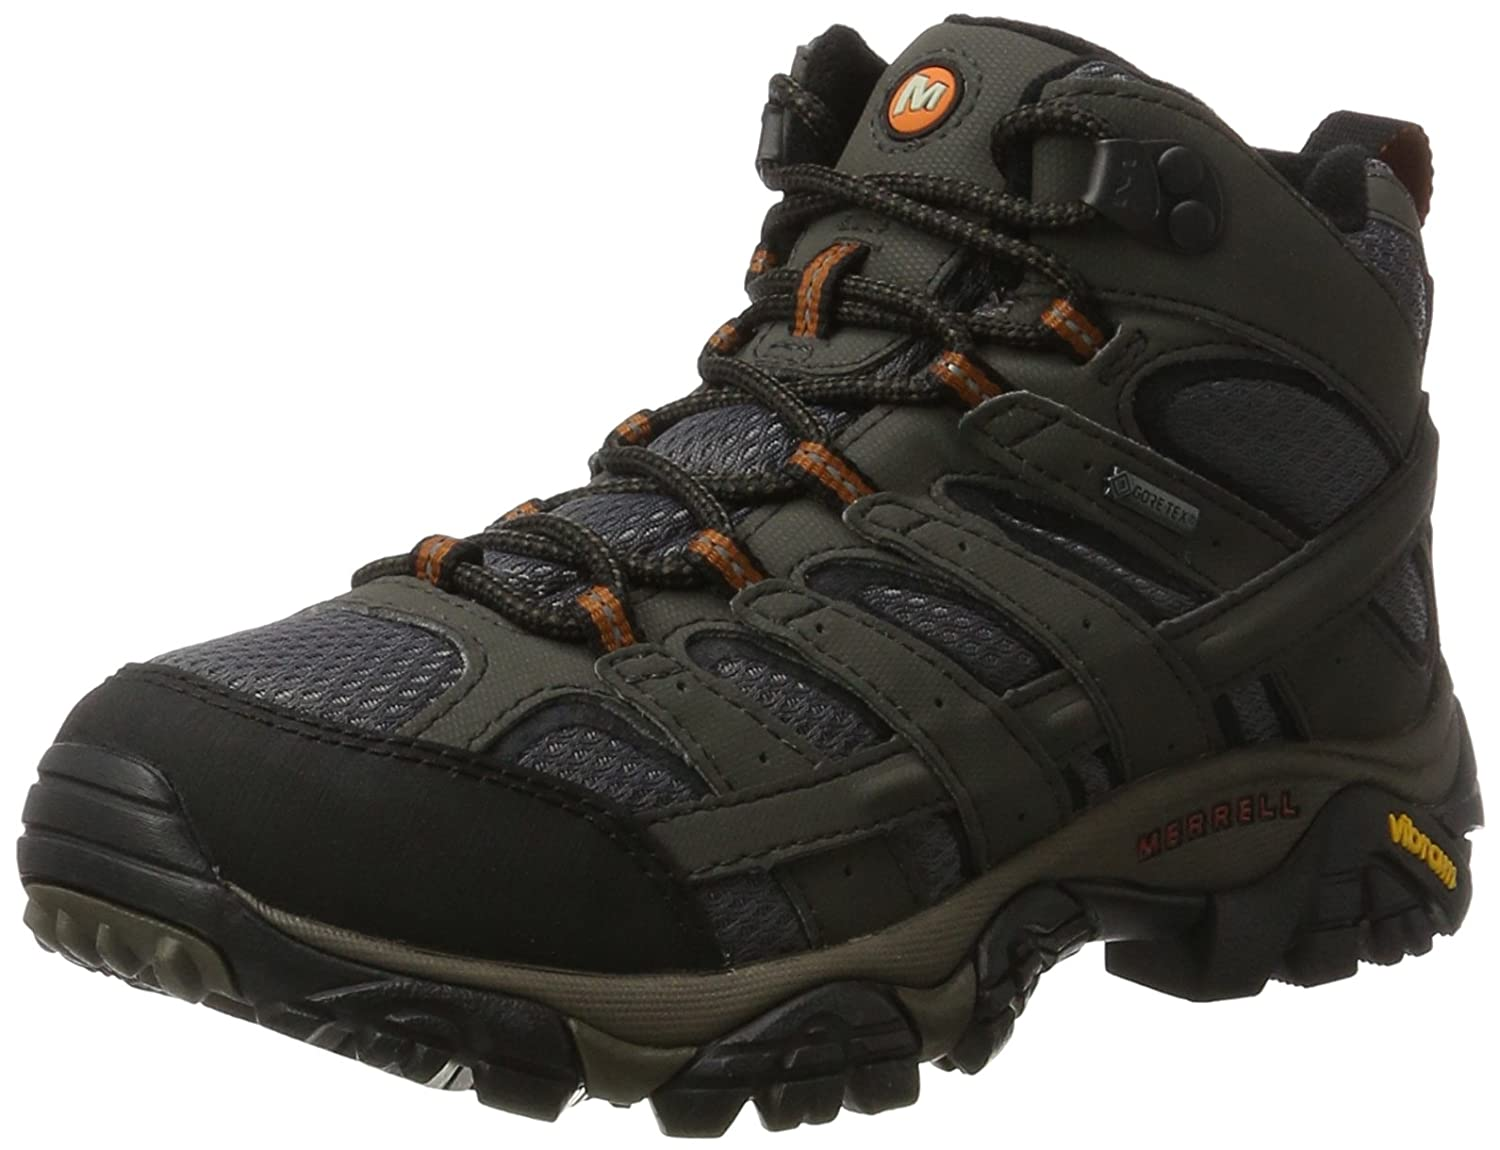 Merrell Women's Moab 2 Mid GTX Hiking Boot B072MB5PGL 10 B(M) US|Beluga